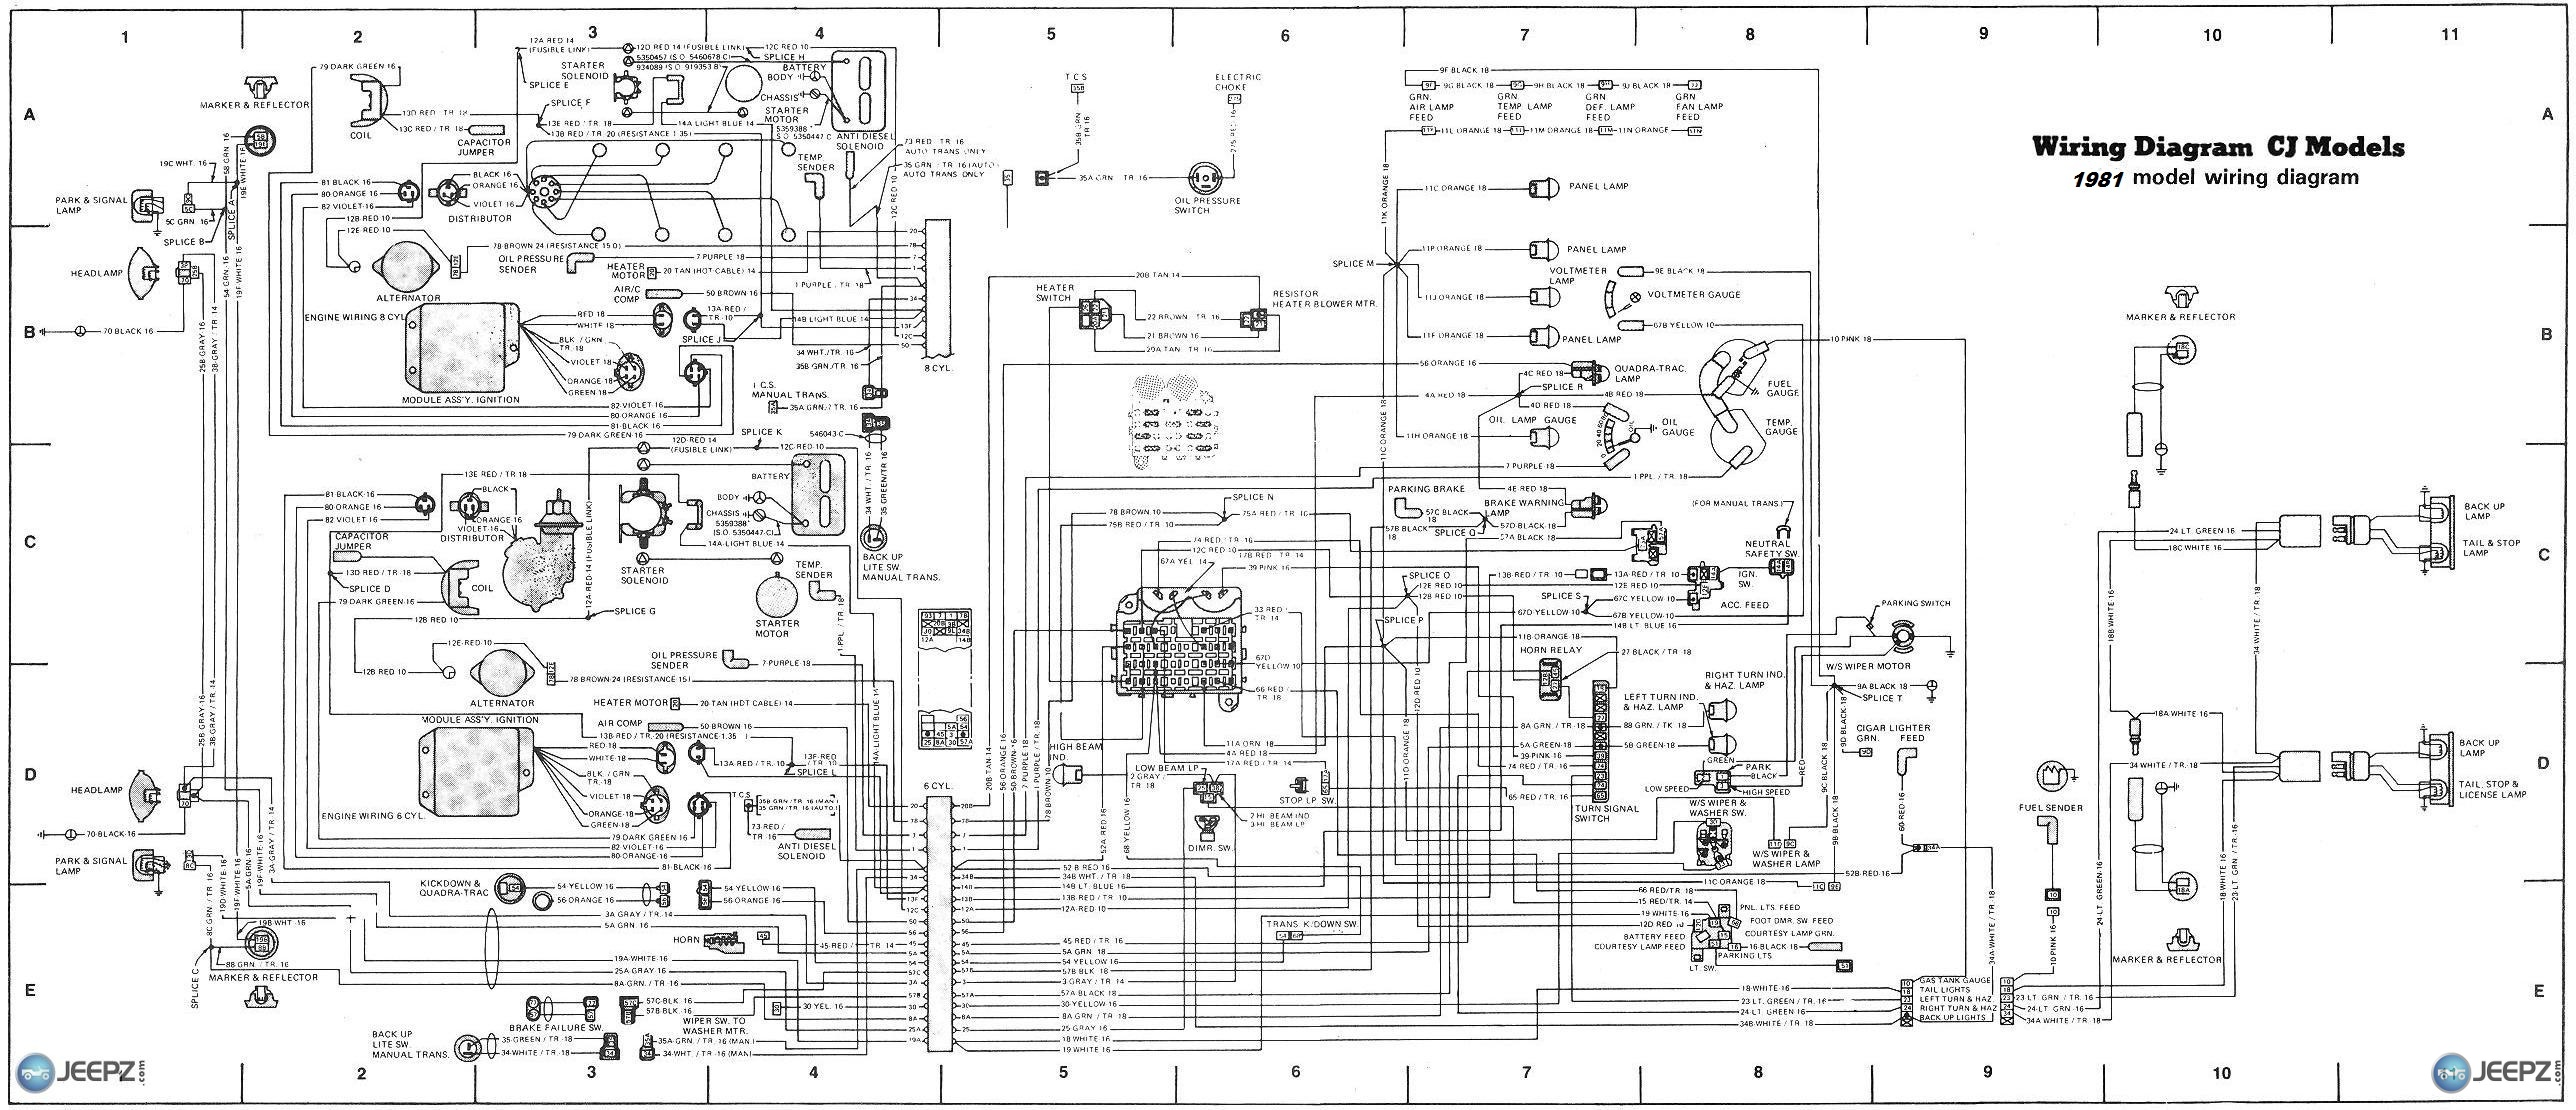 Tremendous Cj7 Painless Wiring Diagram Online Wiring Diagram Wiring Cloud Usnesfoxcilixyz